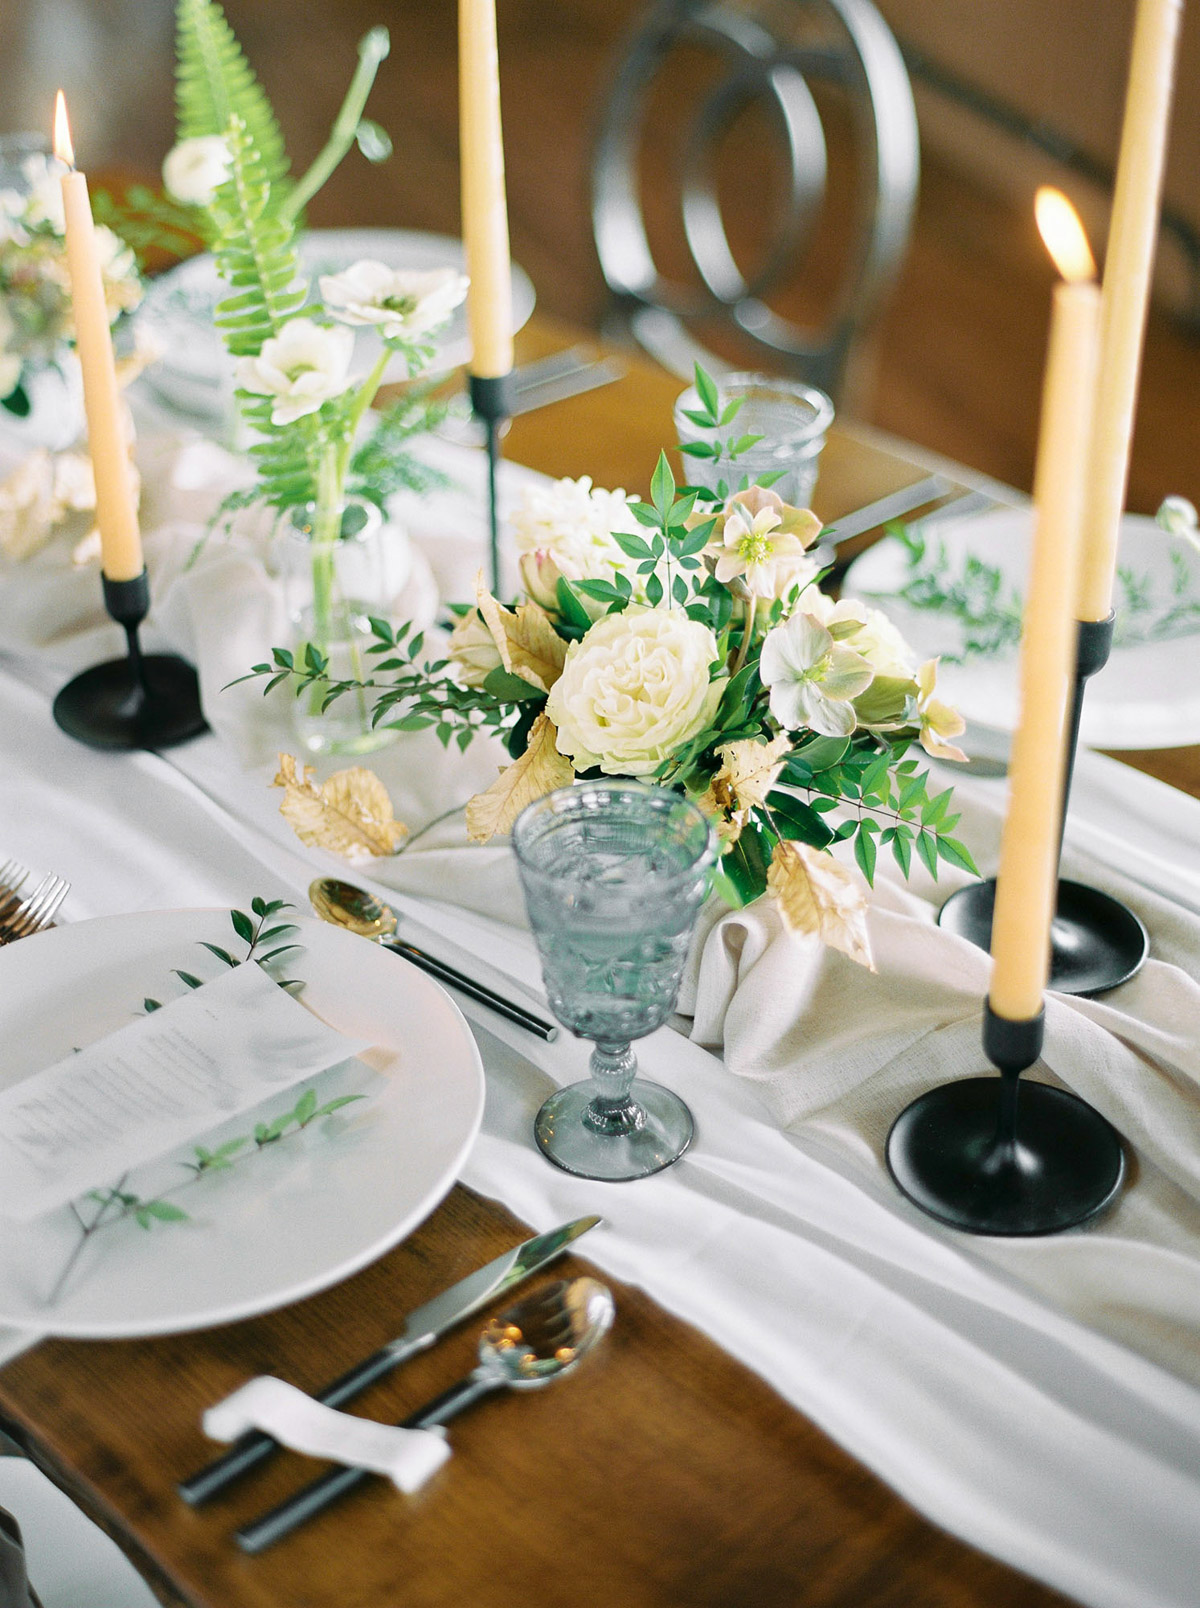 will-reid-photo-vineyard-bride-swish-list-kurtz-orchards-market-niagara-on-the-lake-wedding-editorial-7.jpg